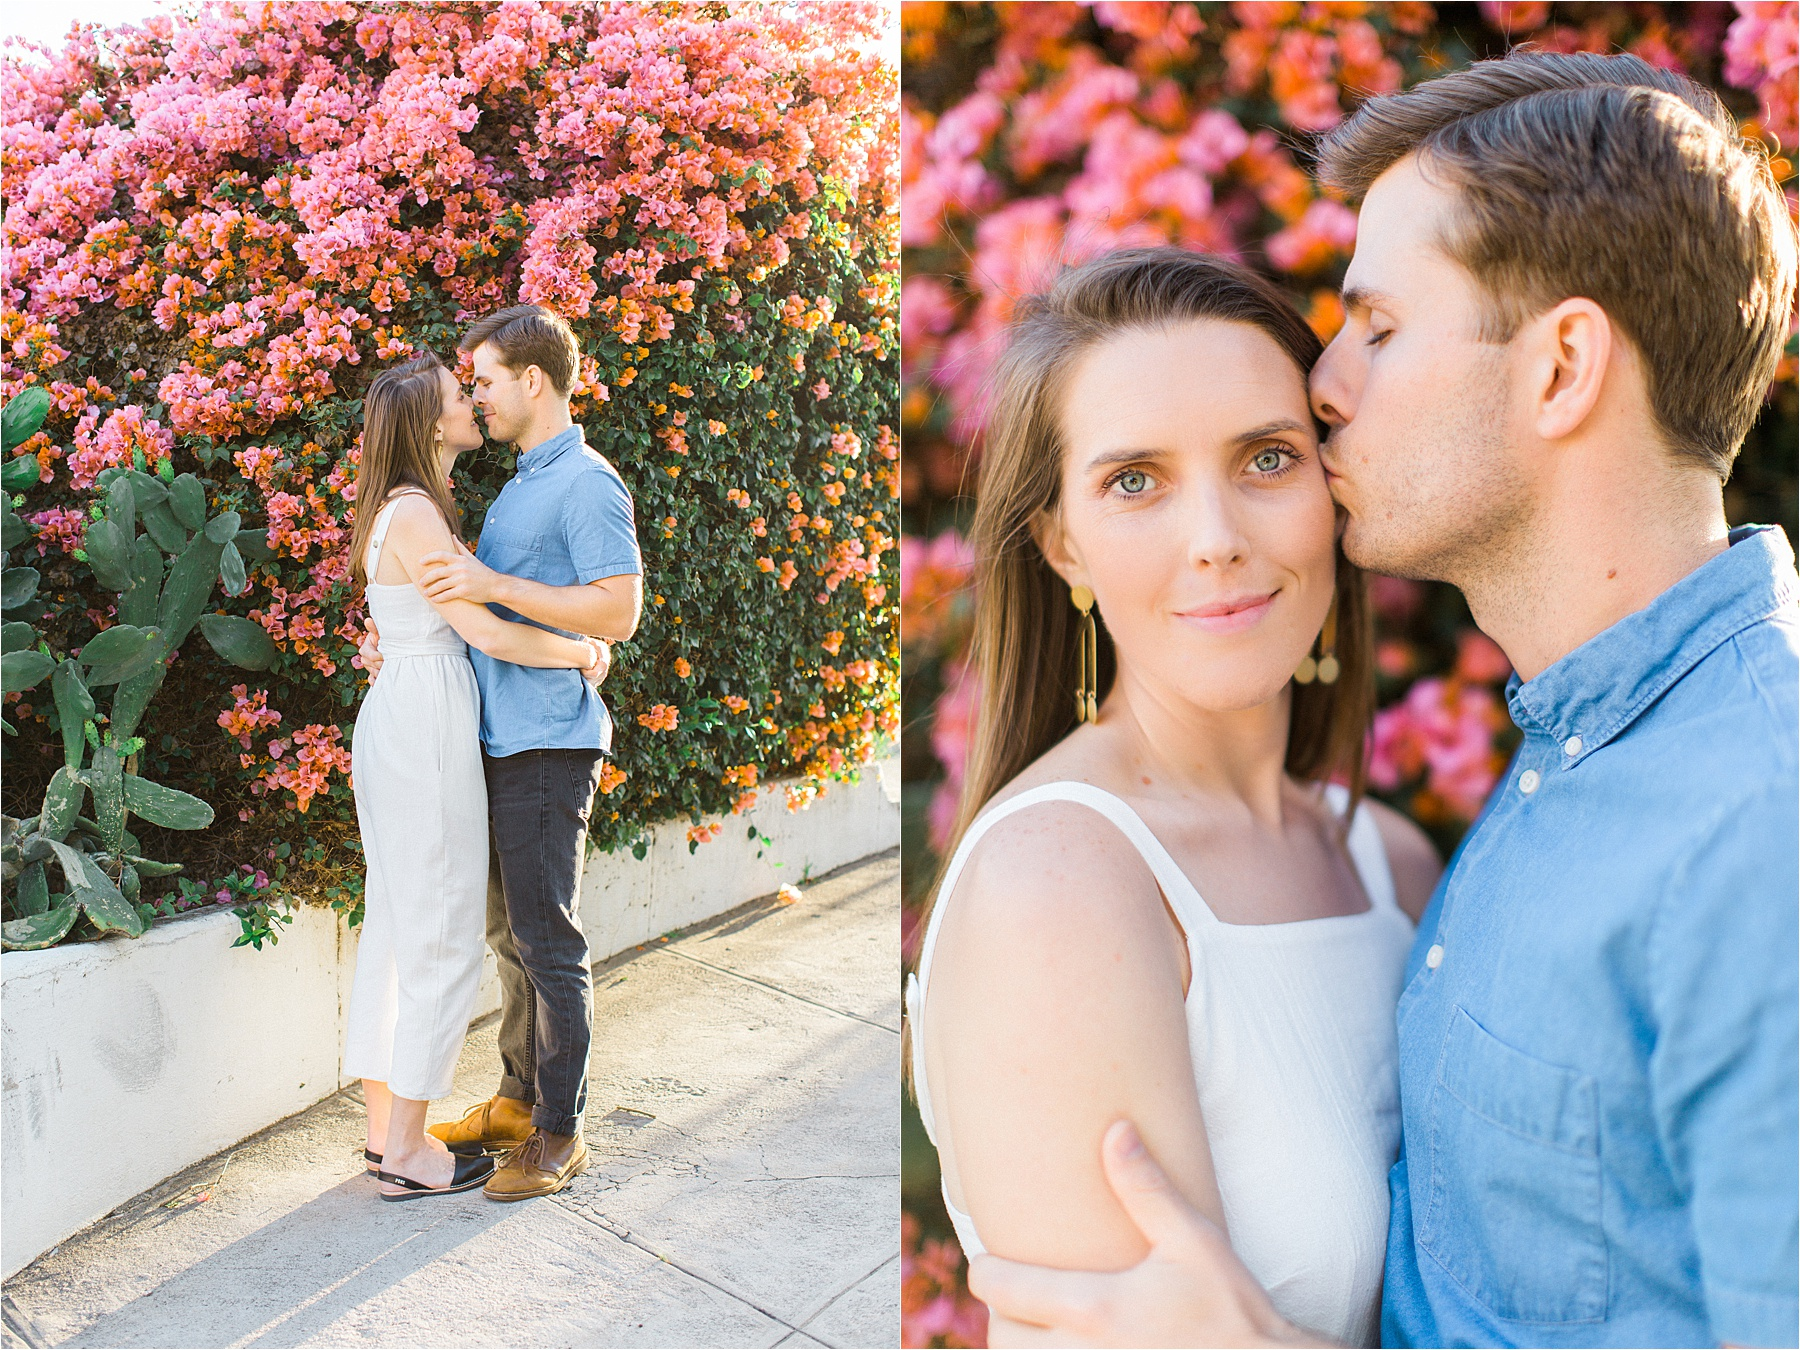 Silverlake Engagement Photos, Silverlake Engagement Photographer, Sarah Ellefson Photography, Silverlake Engagement Session, Silverlake Los Angeles, Los Angeles Engagement Photographer, Los Angeles Wedding Photographer, Los Angeles Wedding Photos, Los Angeles Engagement Photos